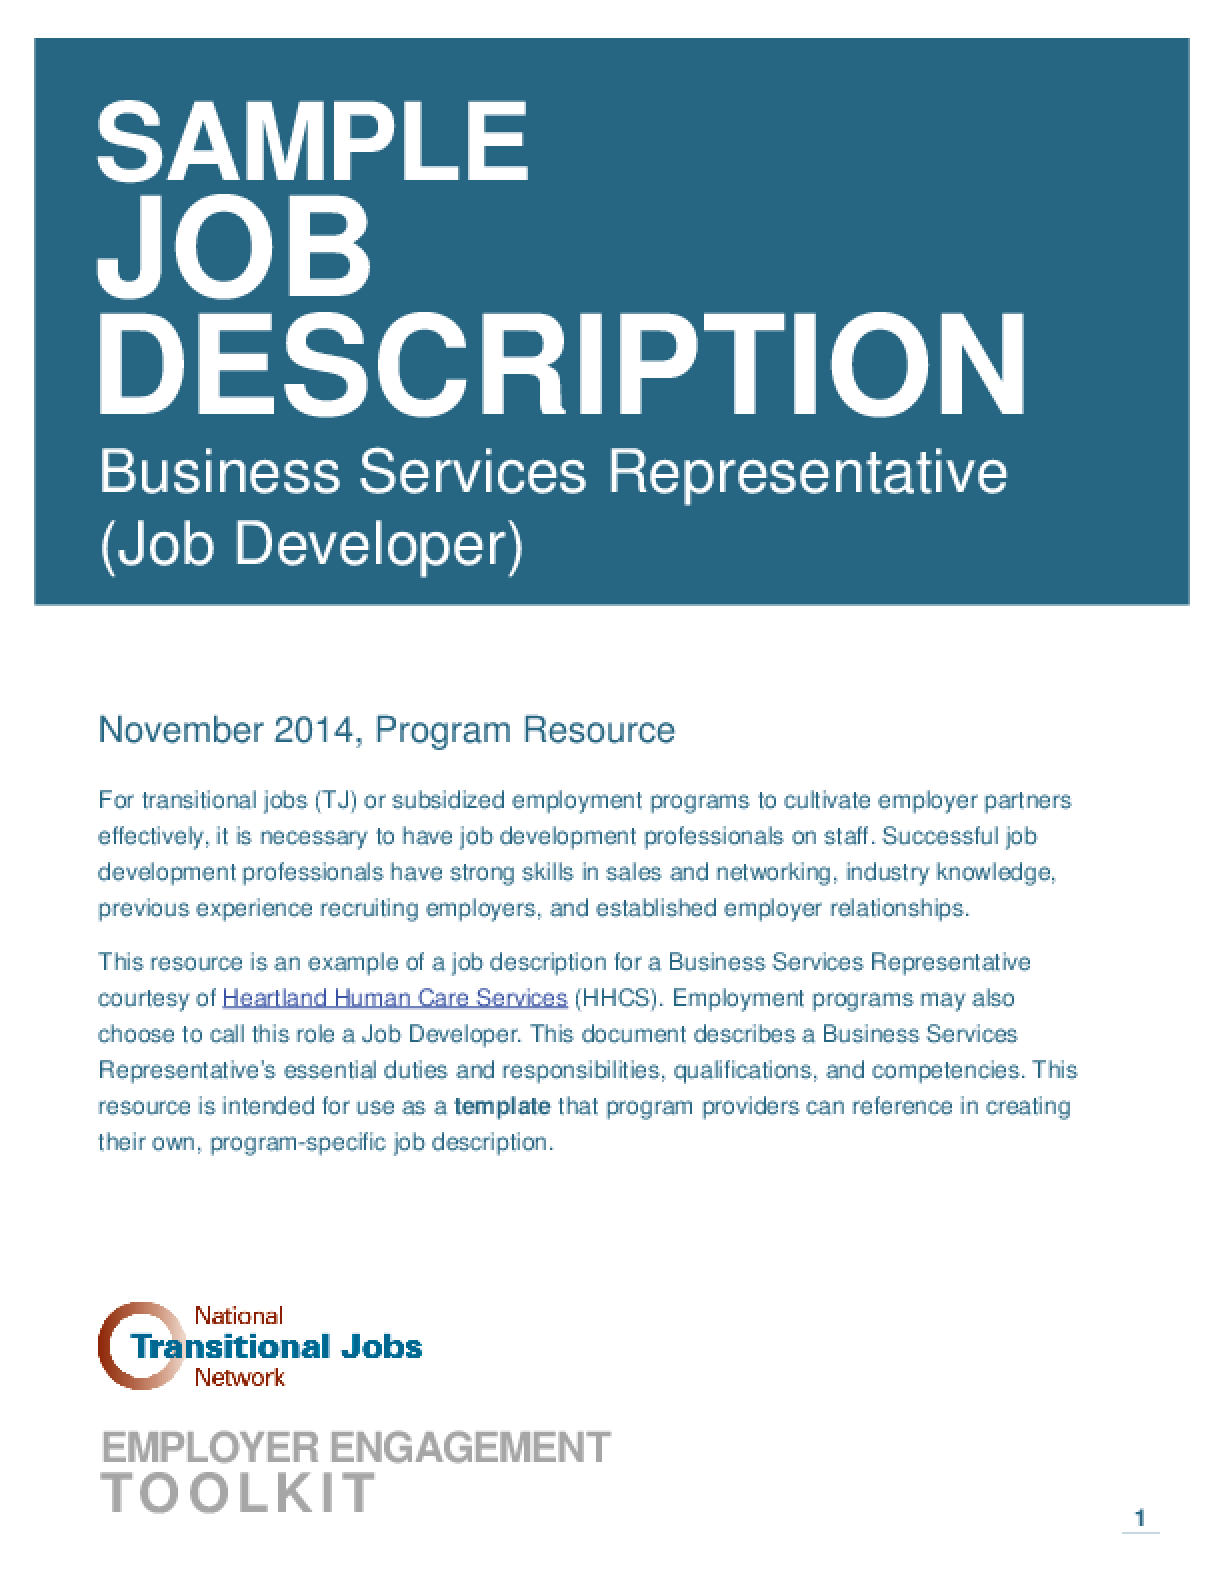 Sample Job Description Business Services Representative